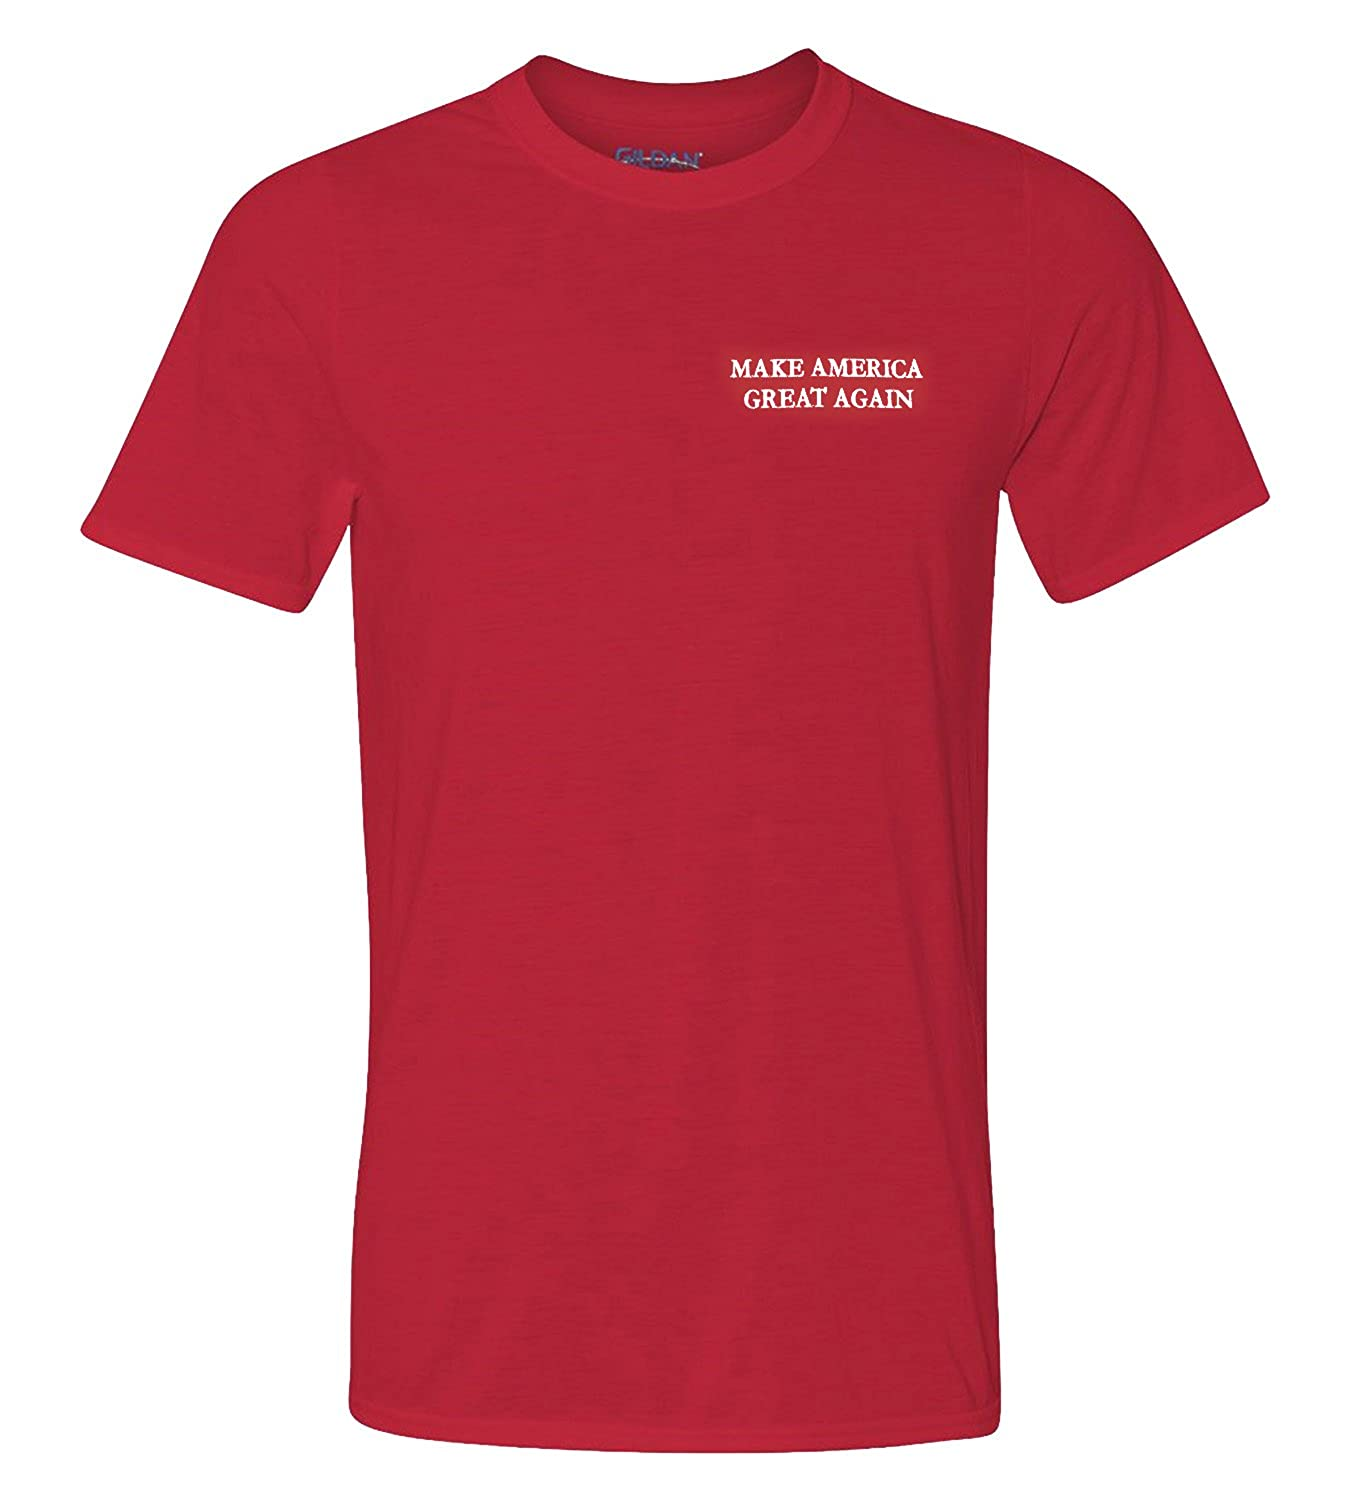 752325c25 Men's Donald Trump Make America Great Again Embroidered Poly Jersey T- -  Armycrew.com